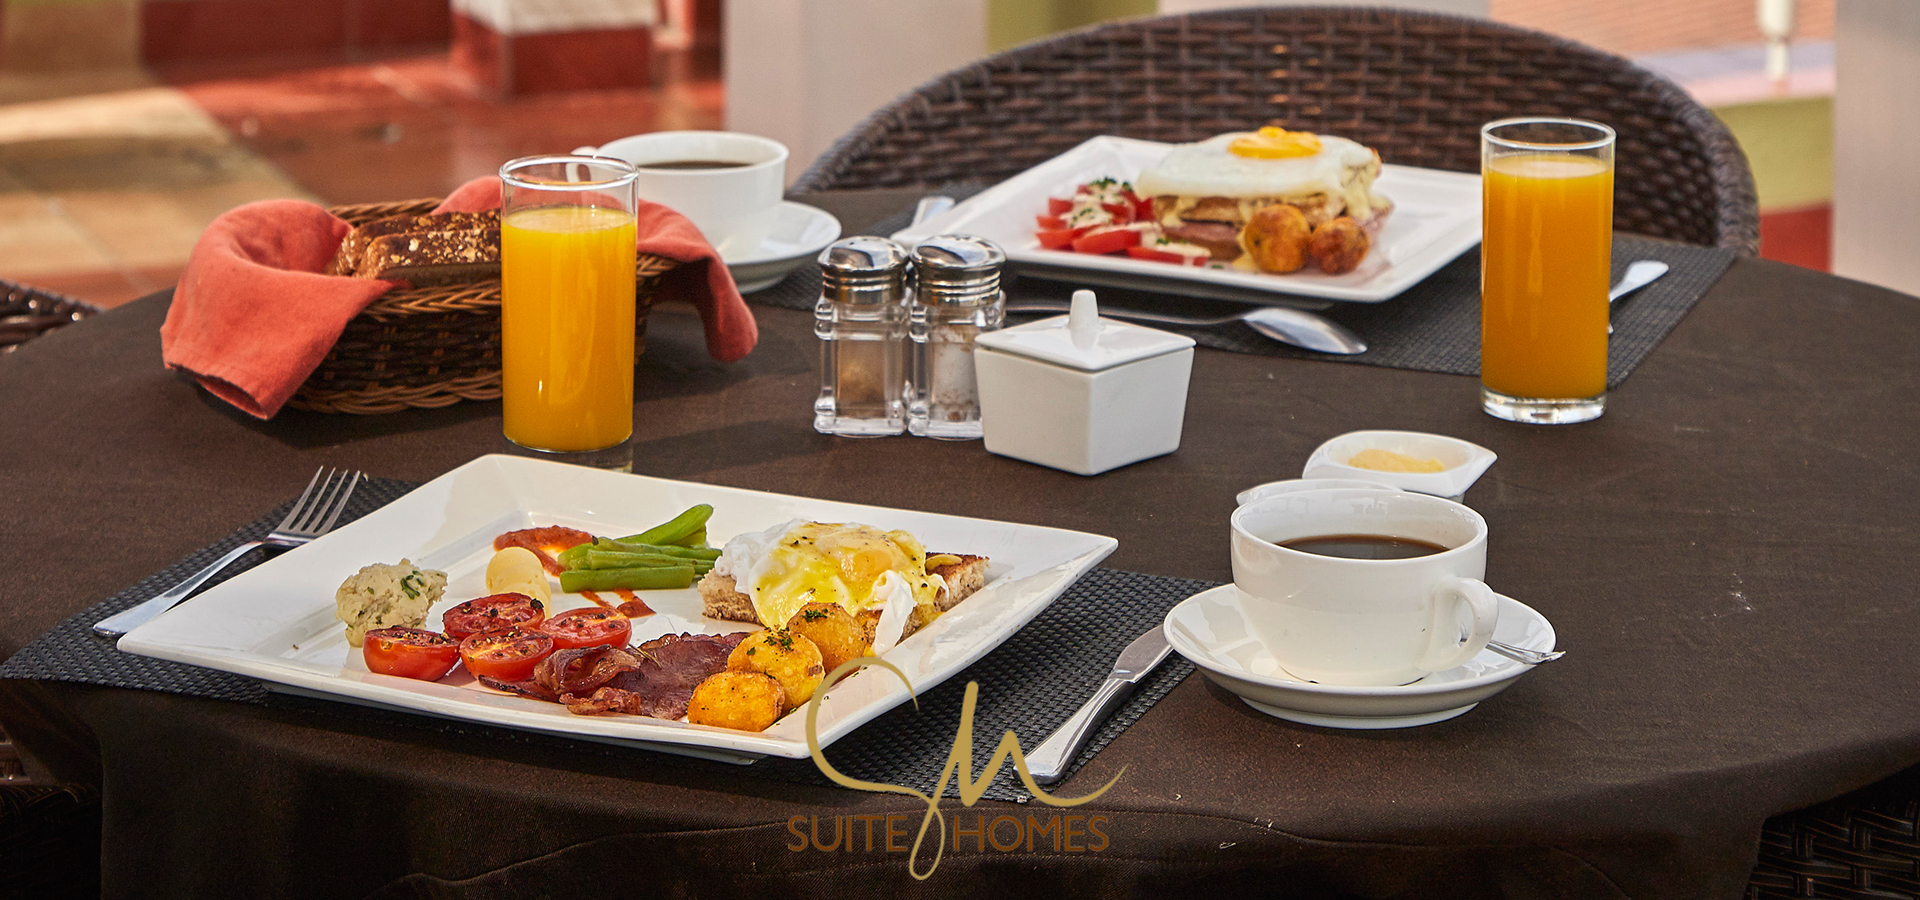 suitehomes_web-breakfast